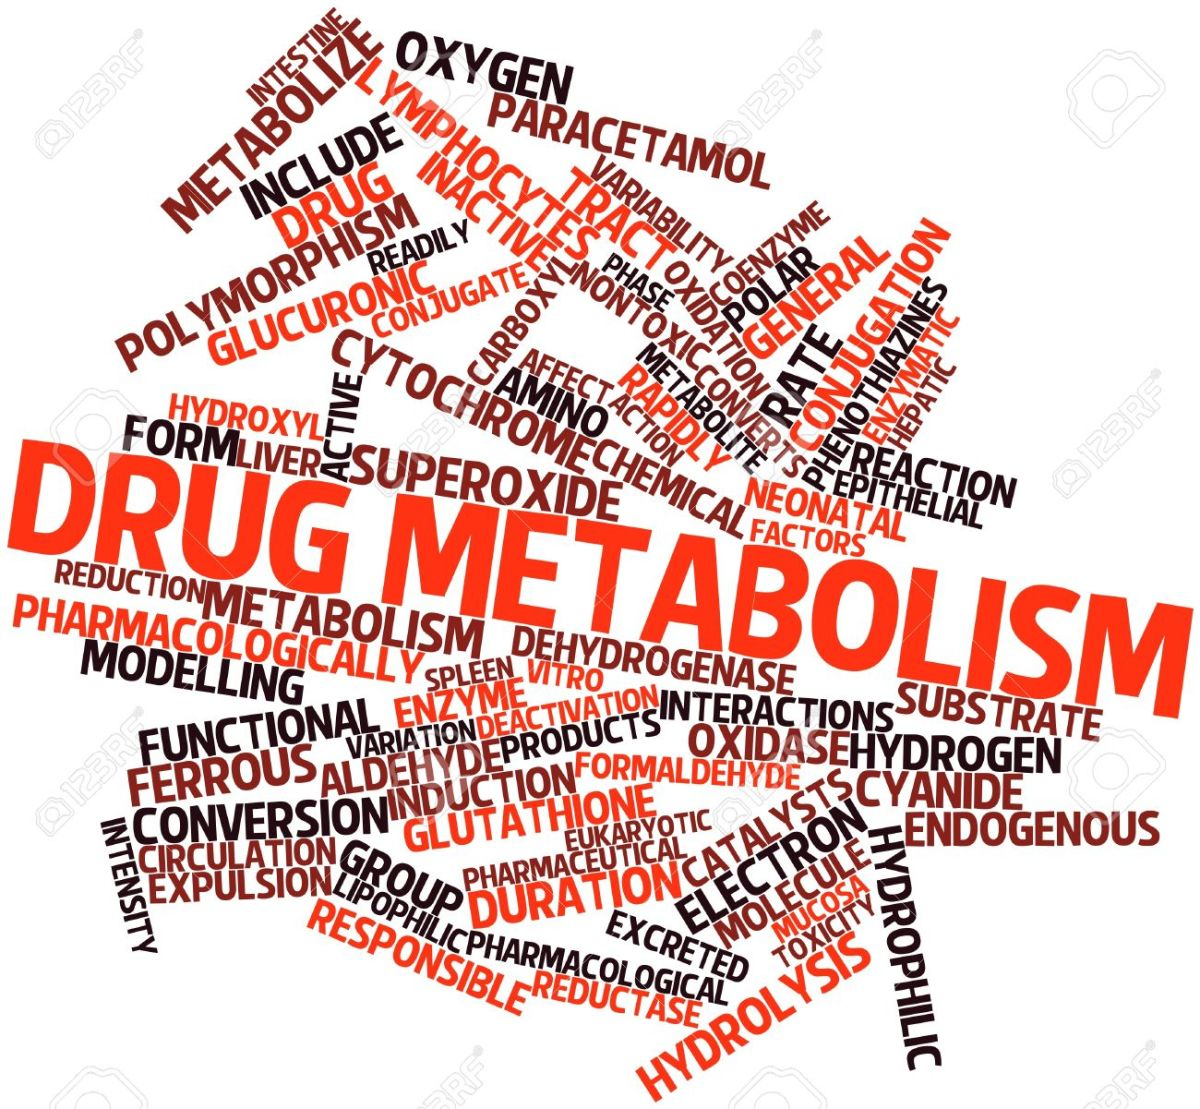 alcohols-effect-on-drug-metabolism-in-active-women-and-sedentary-men